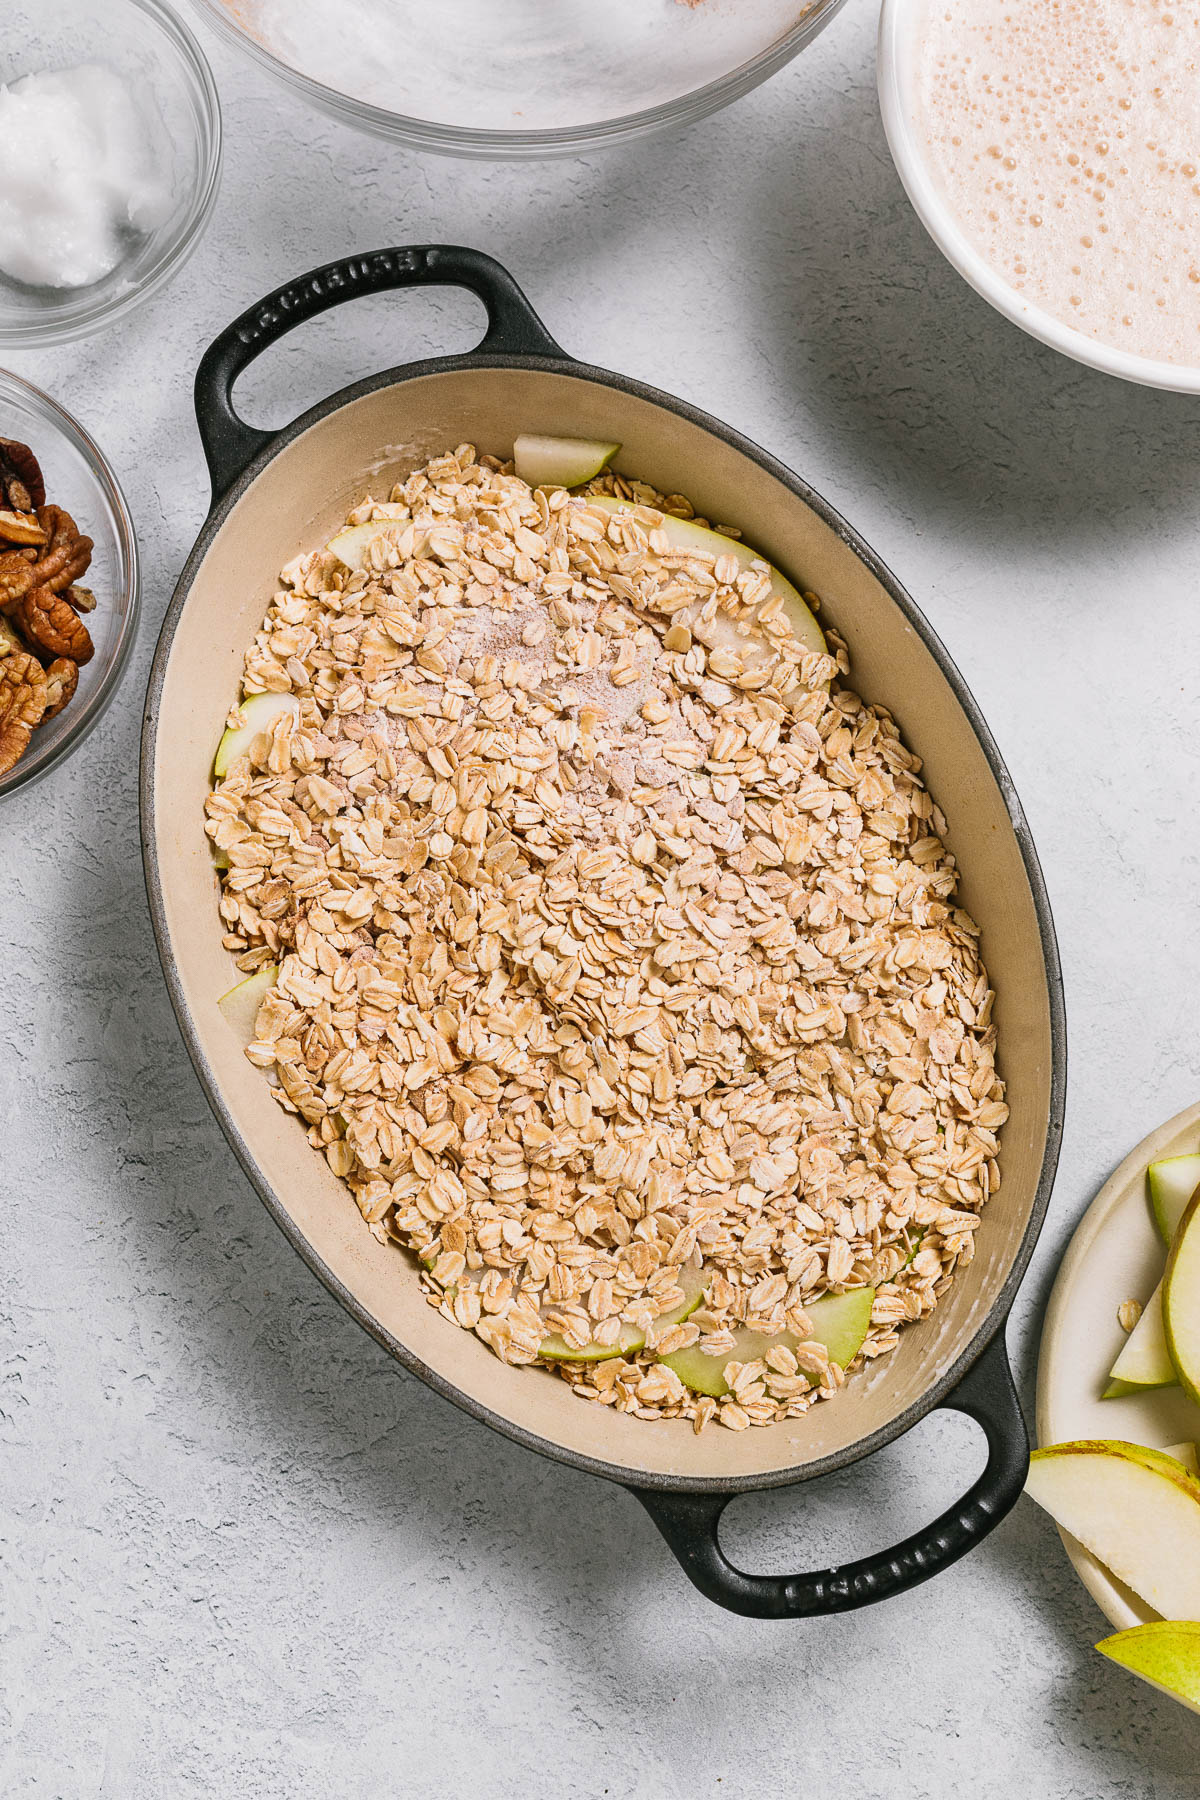 An oval baking dish of uncooked oats and sliced pear.